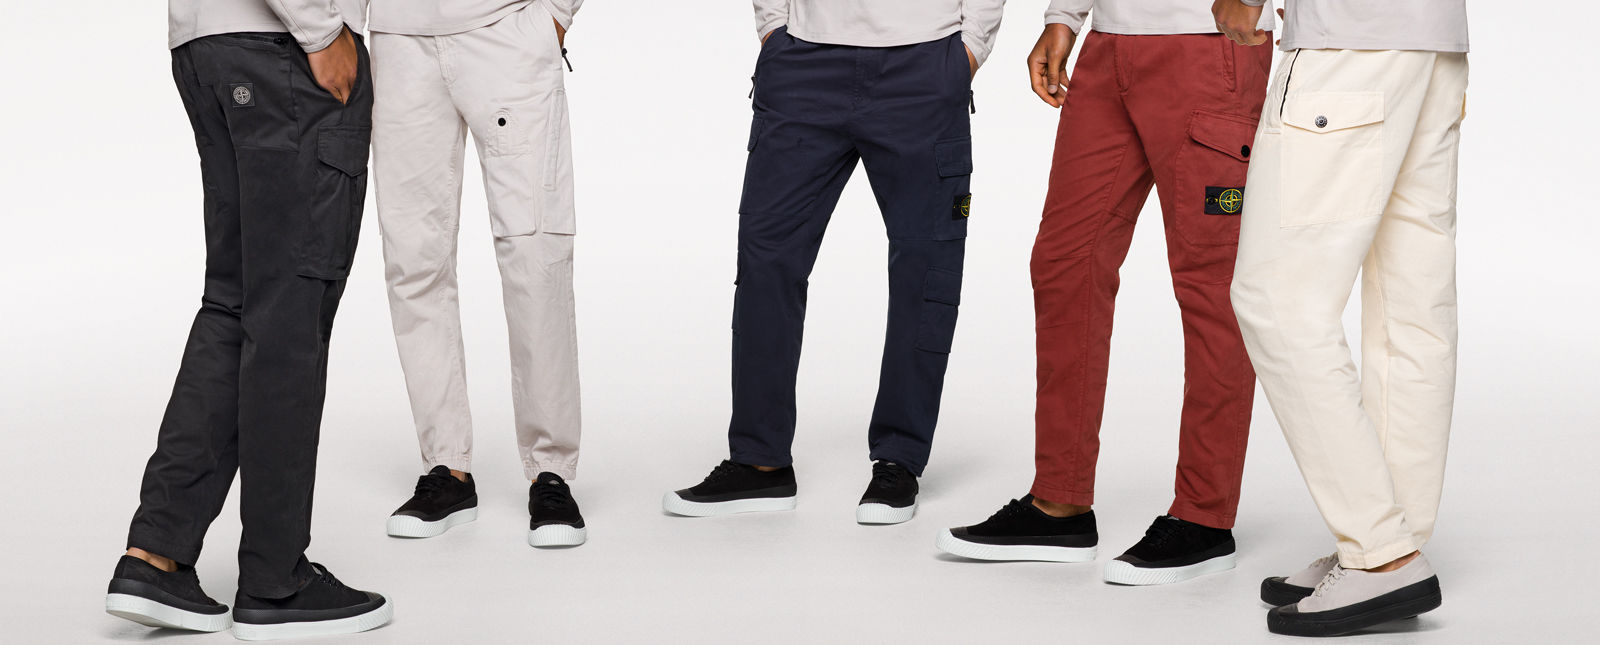 Five models standing in a semi circle and wearing off white tops, sneakers and different styles of cargo pants in black, white, dark blue, brick red and cream.